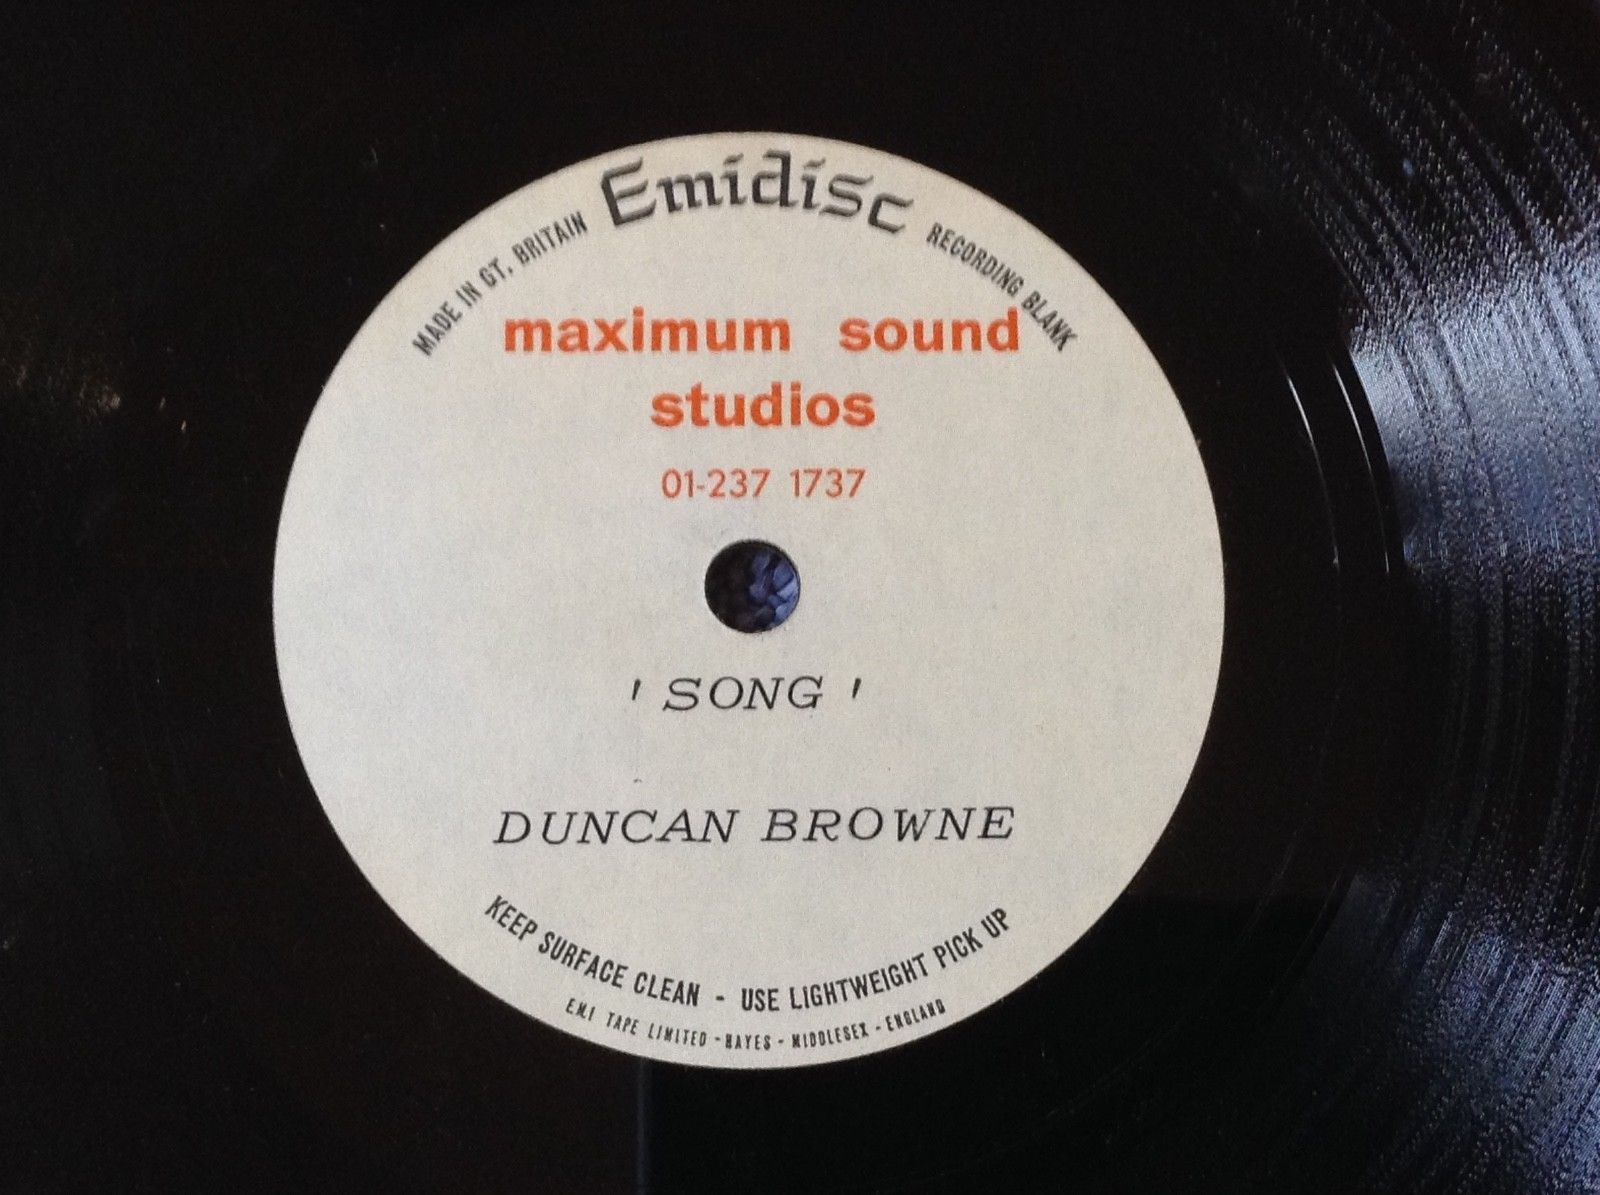 UNRELEASED 1968 DEMO ACETATE - DUNCAN BROWNE rare 1968 - 2 PSYCH FOLK TRACKS